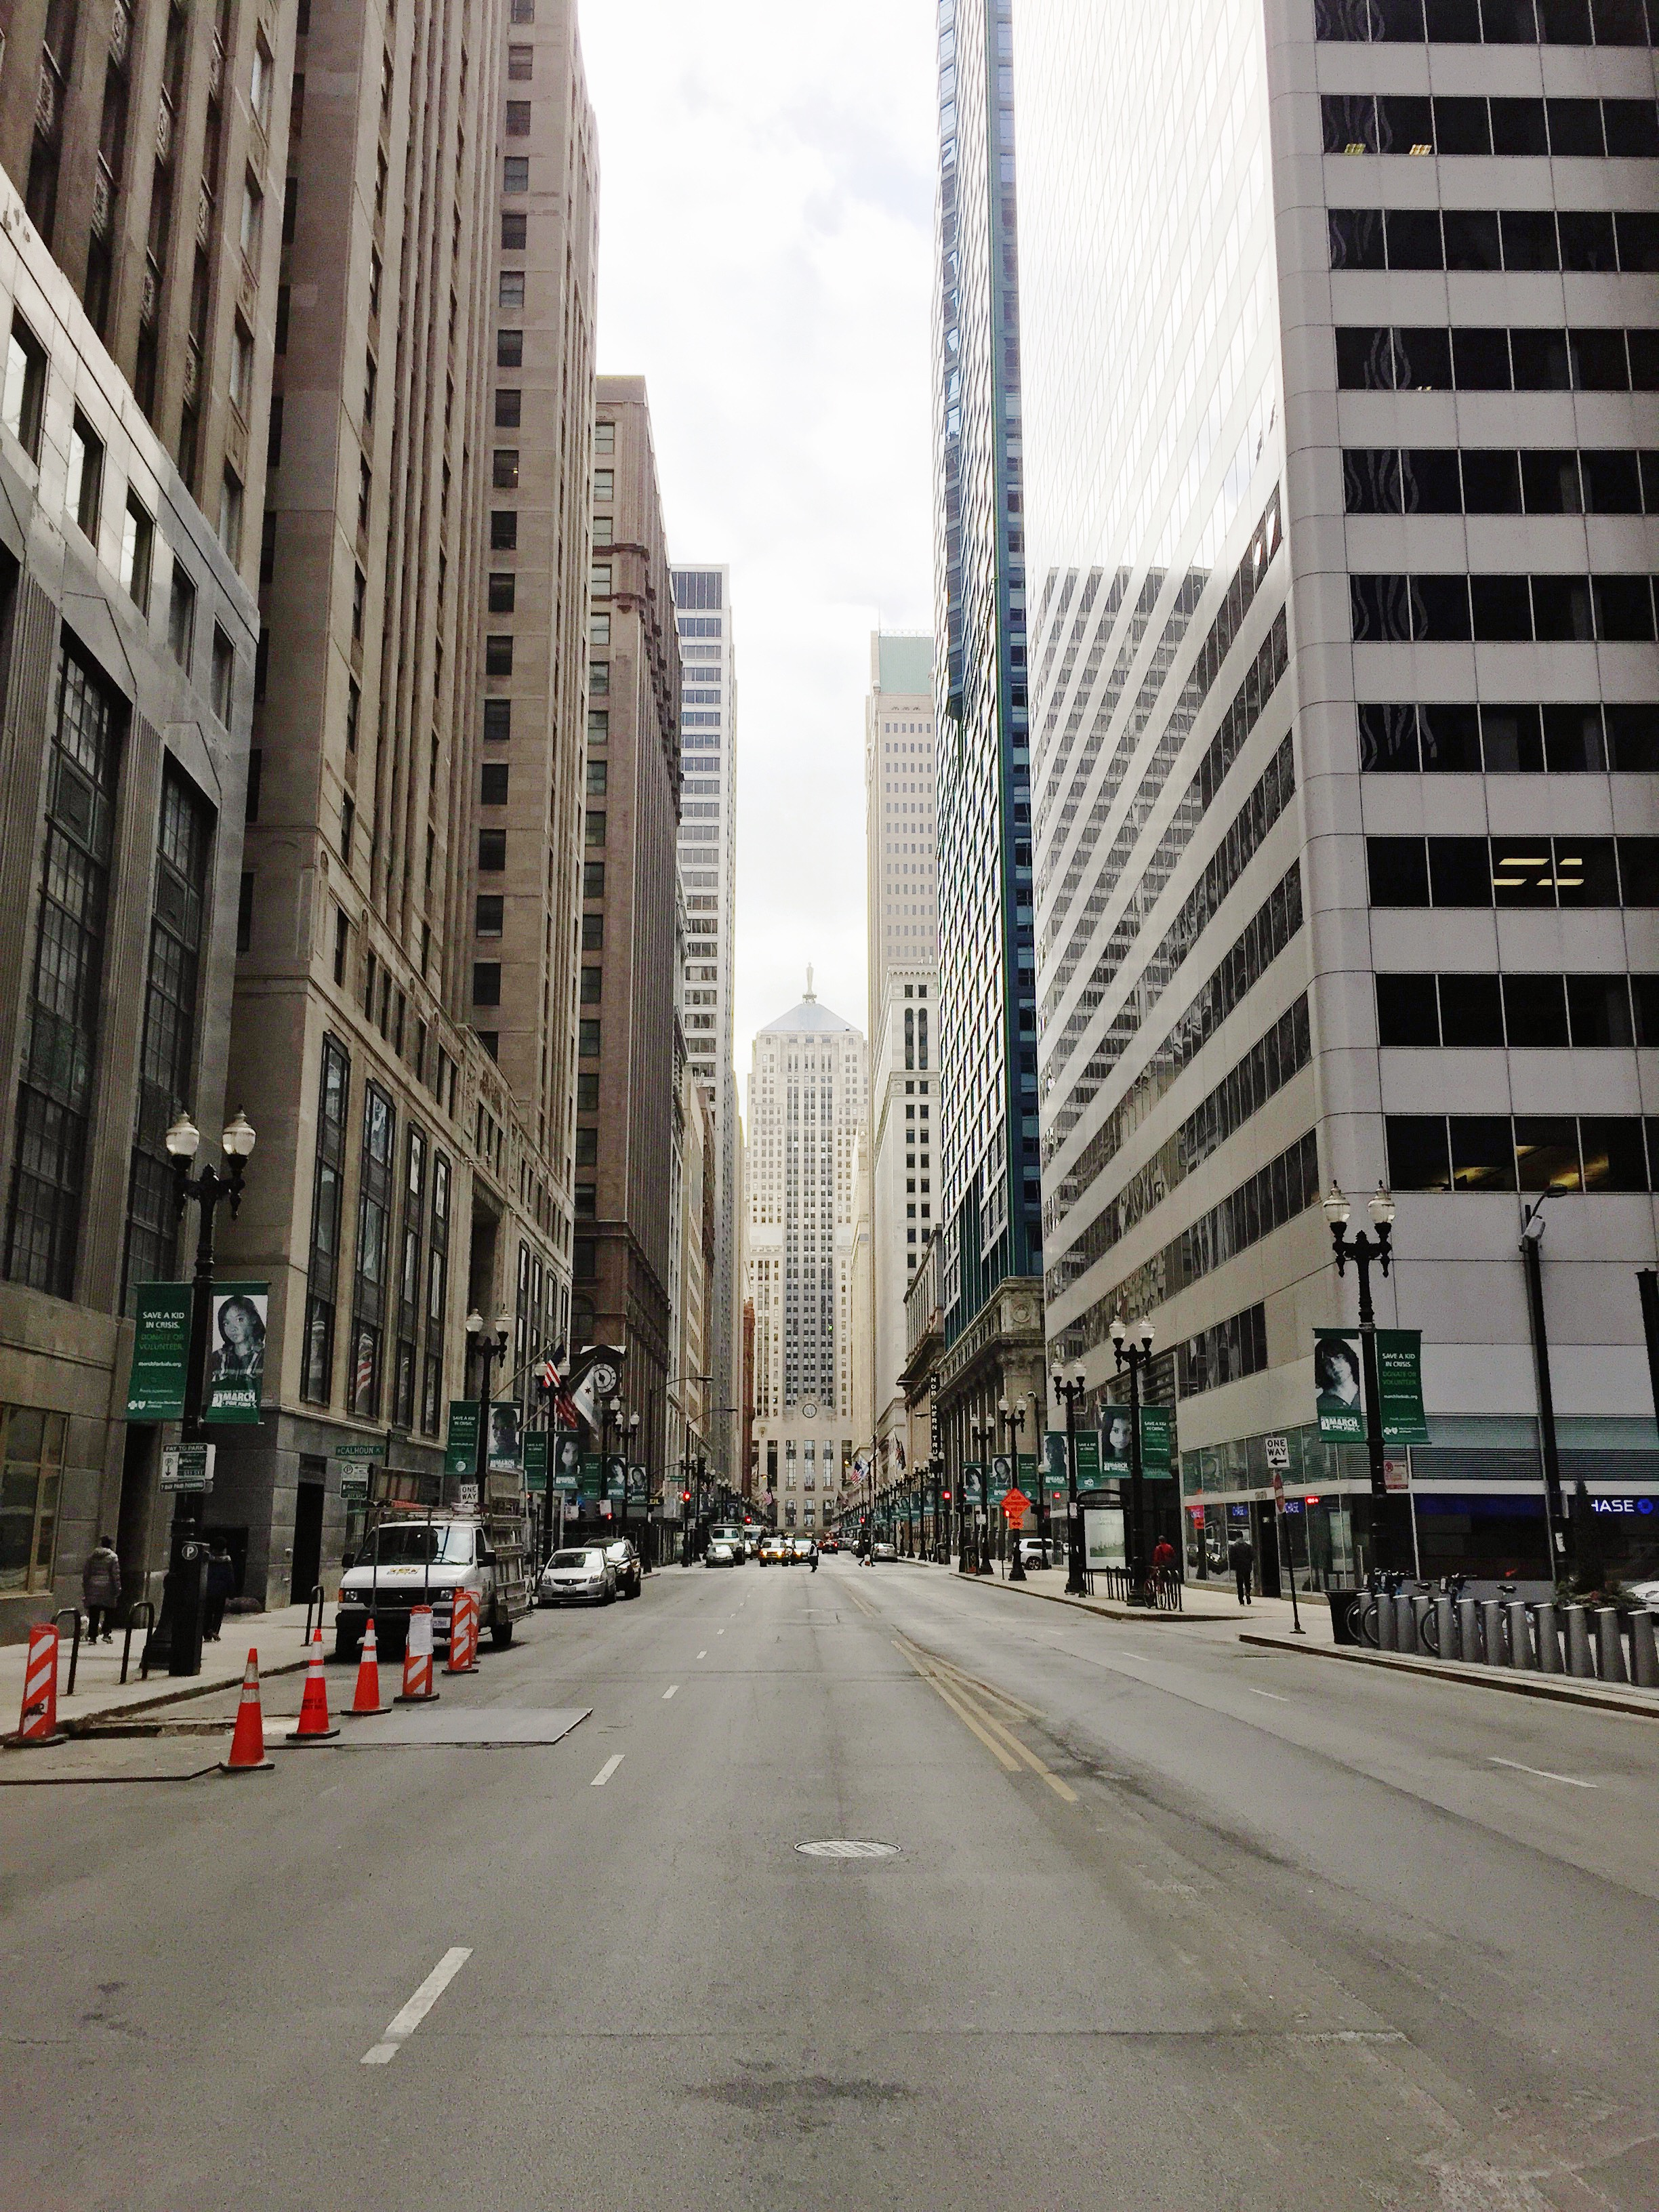 View of Chicago Board of Trade (CBOT),LaSalle and Washington